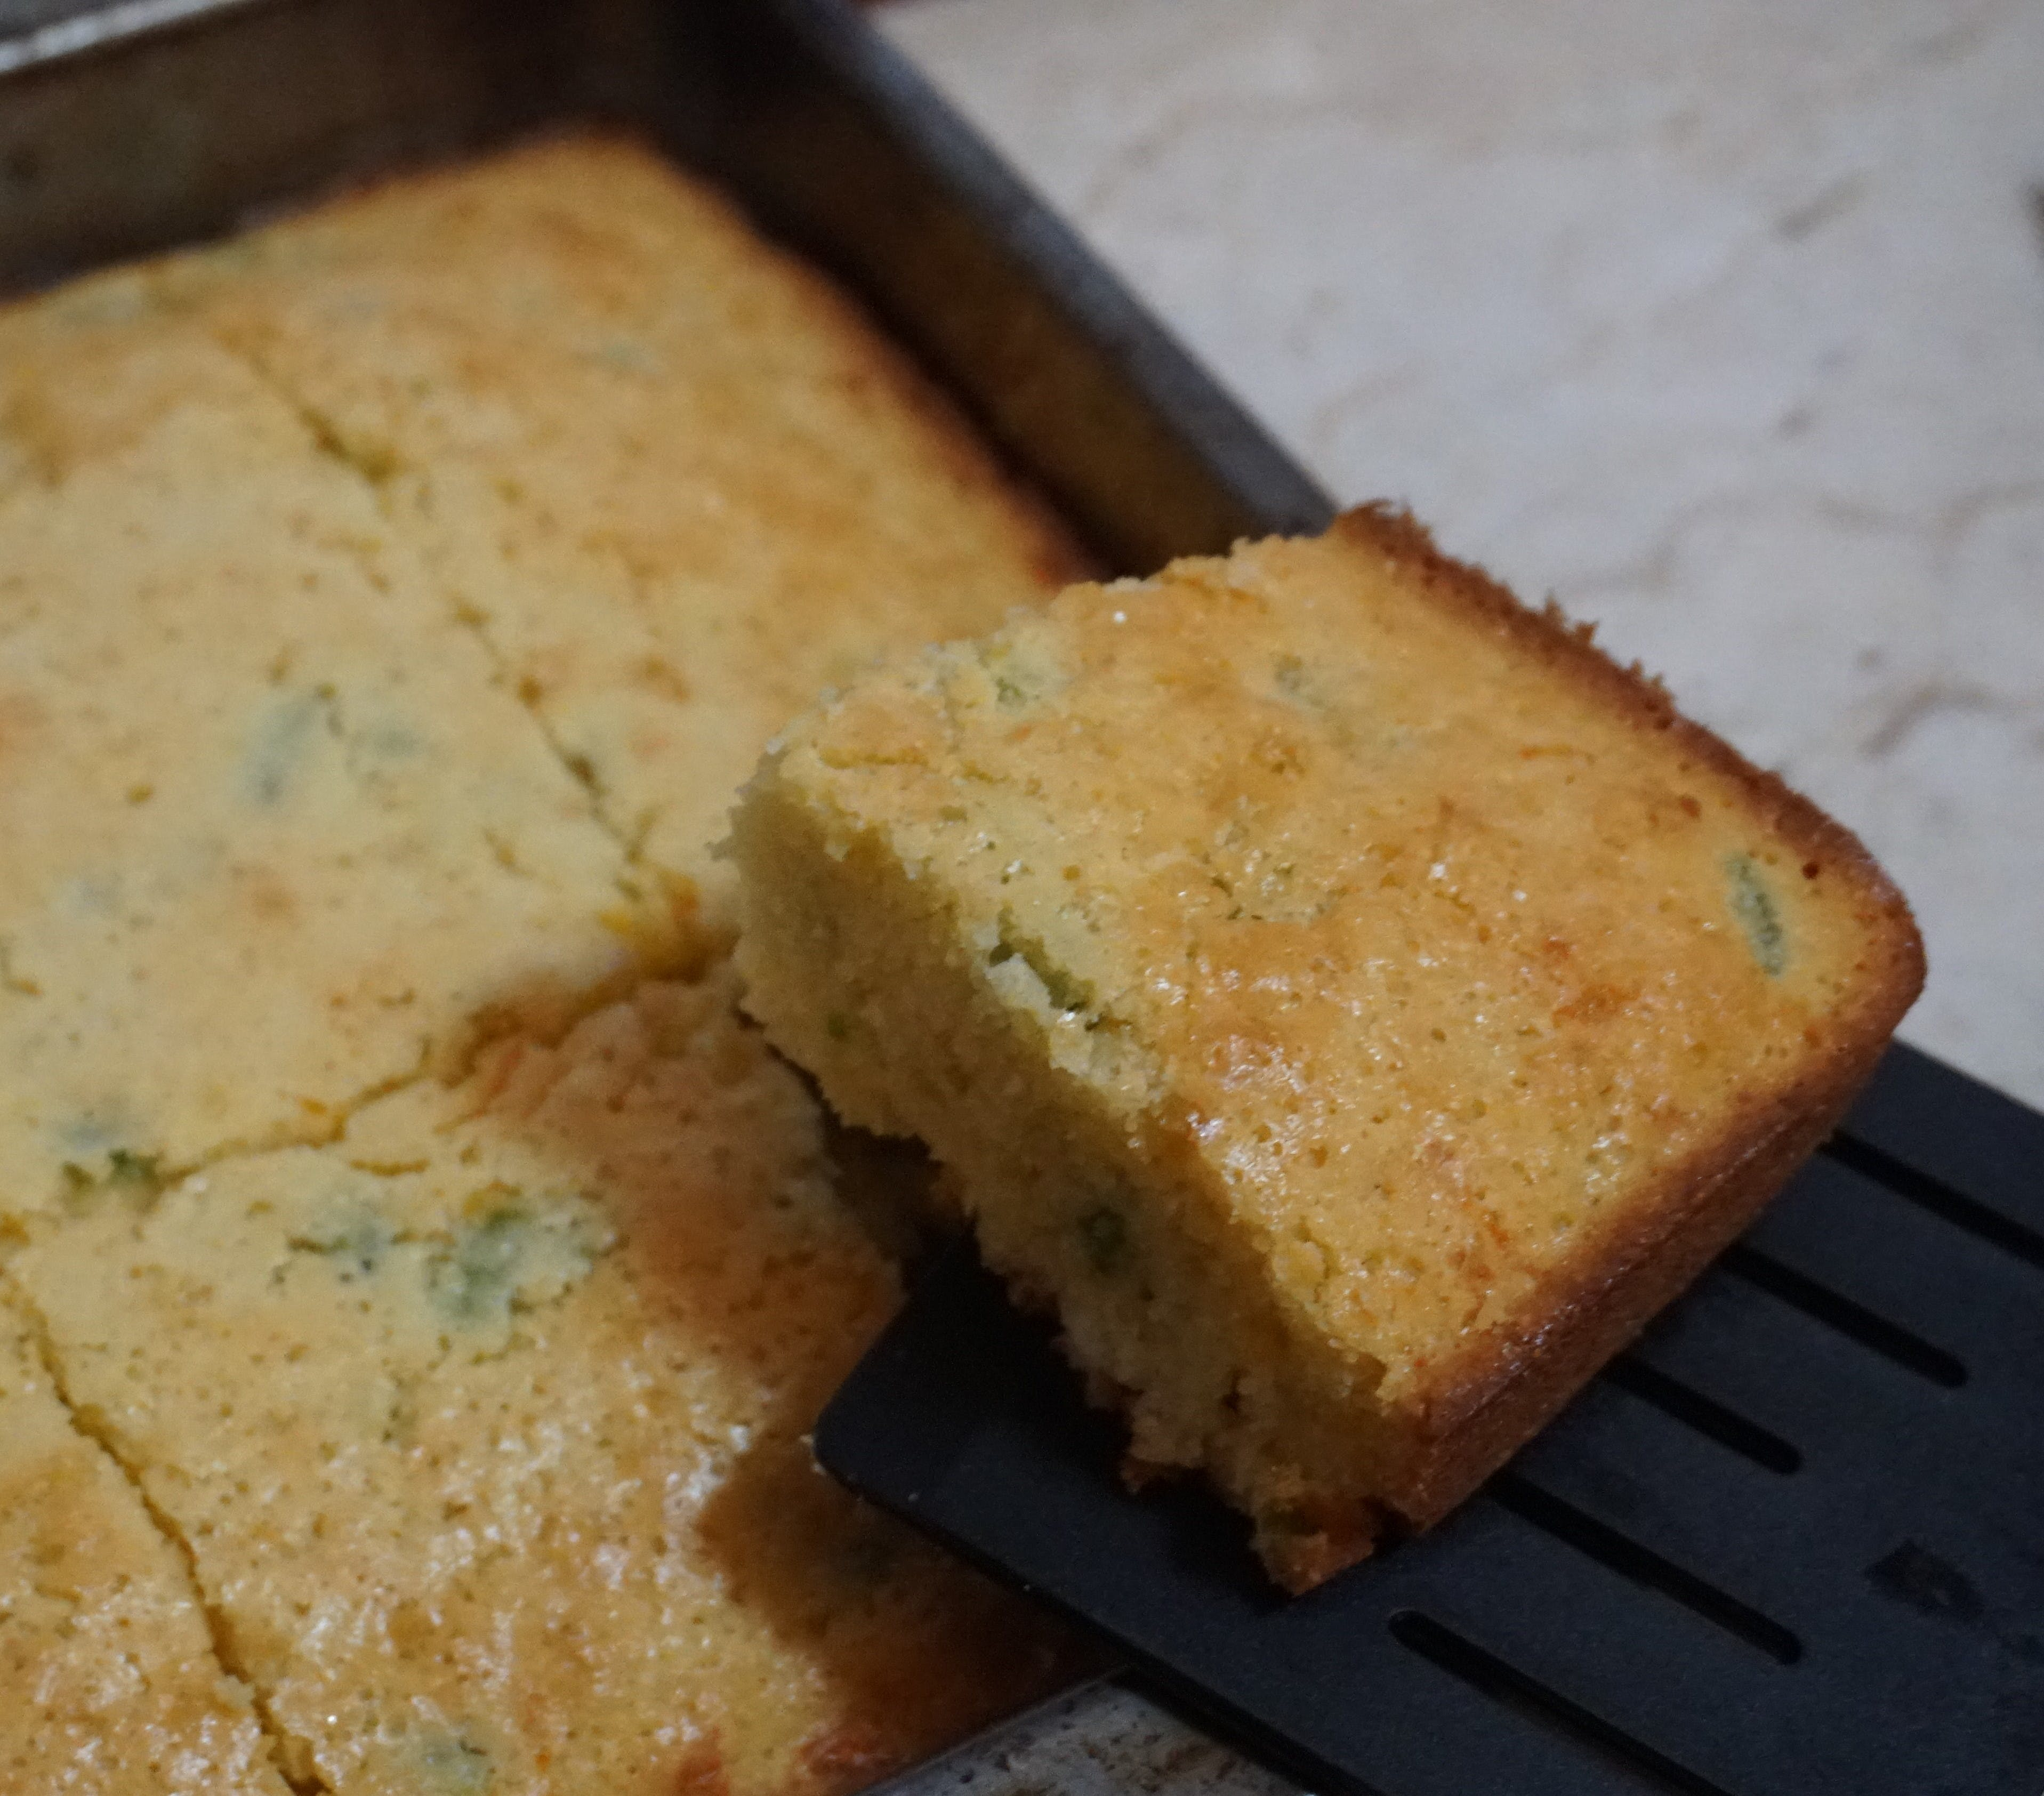 Free stock photo of cornbread, food servings, served food, serving